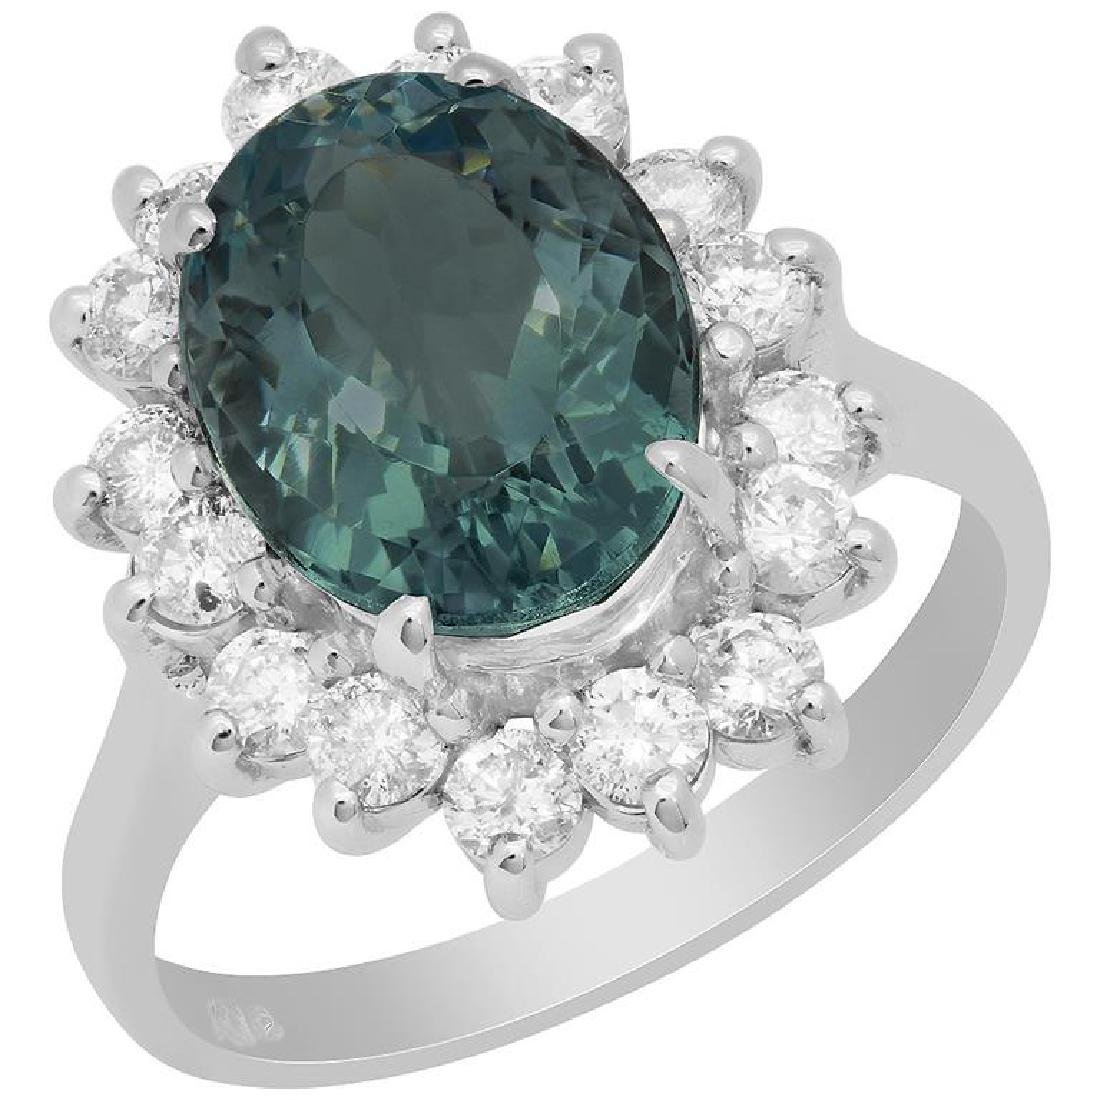 14k White Gold 3.56ct Aquamarine 0.89ct Diamond Ring